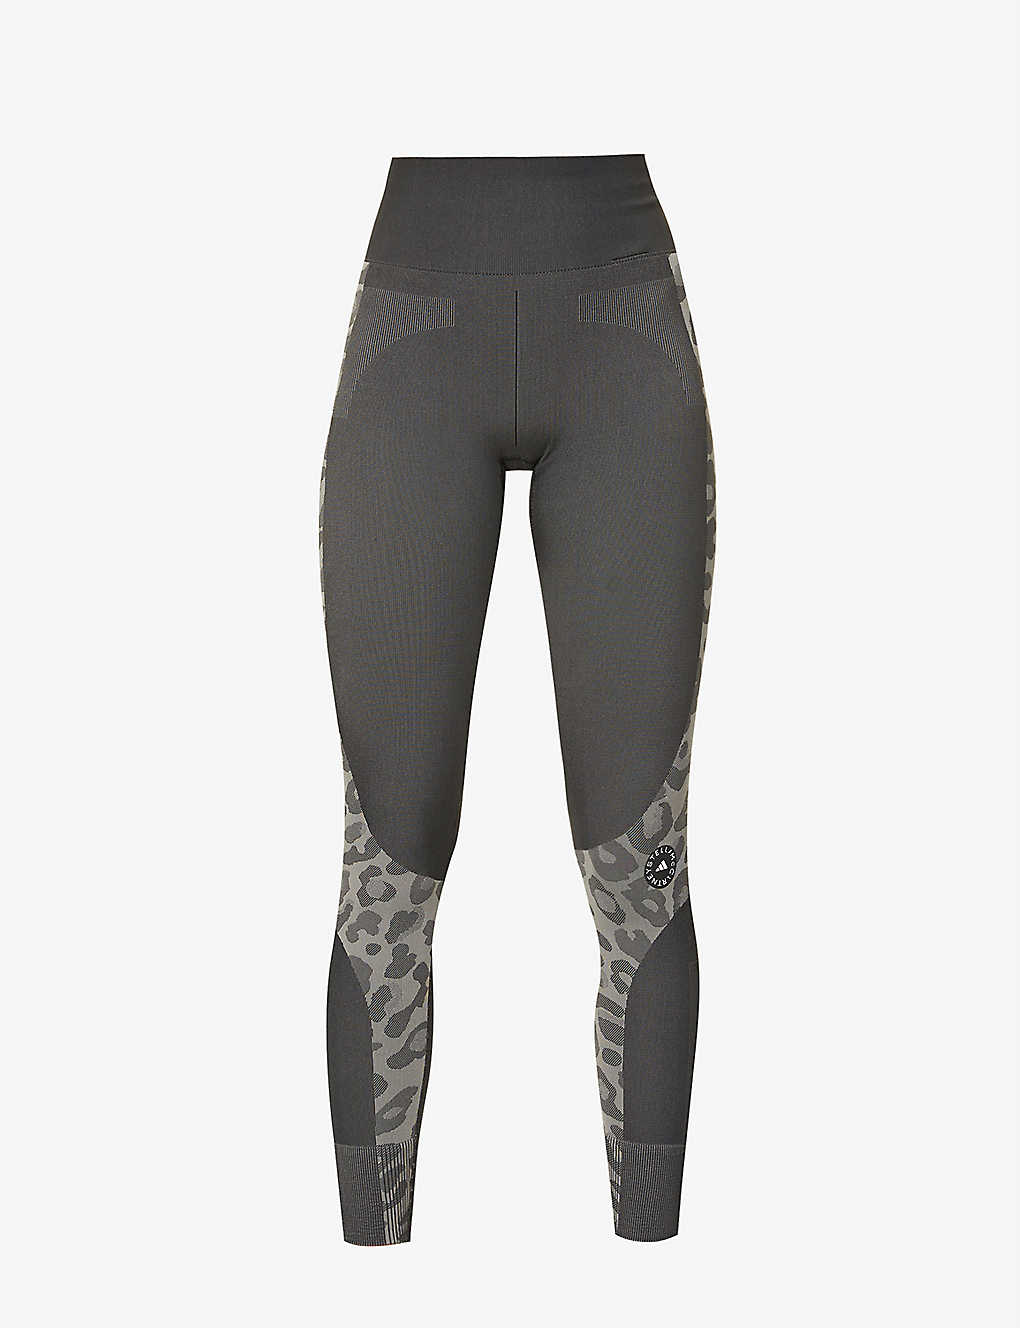 ADIDAS BY STELLA MCCARTNEY: Truepur leopard-print high-rise recycled polyester-blend leggings